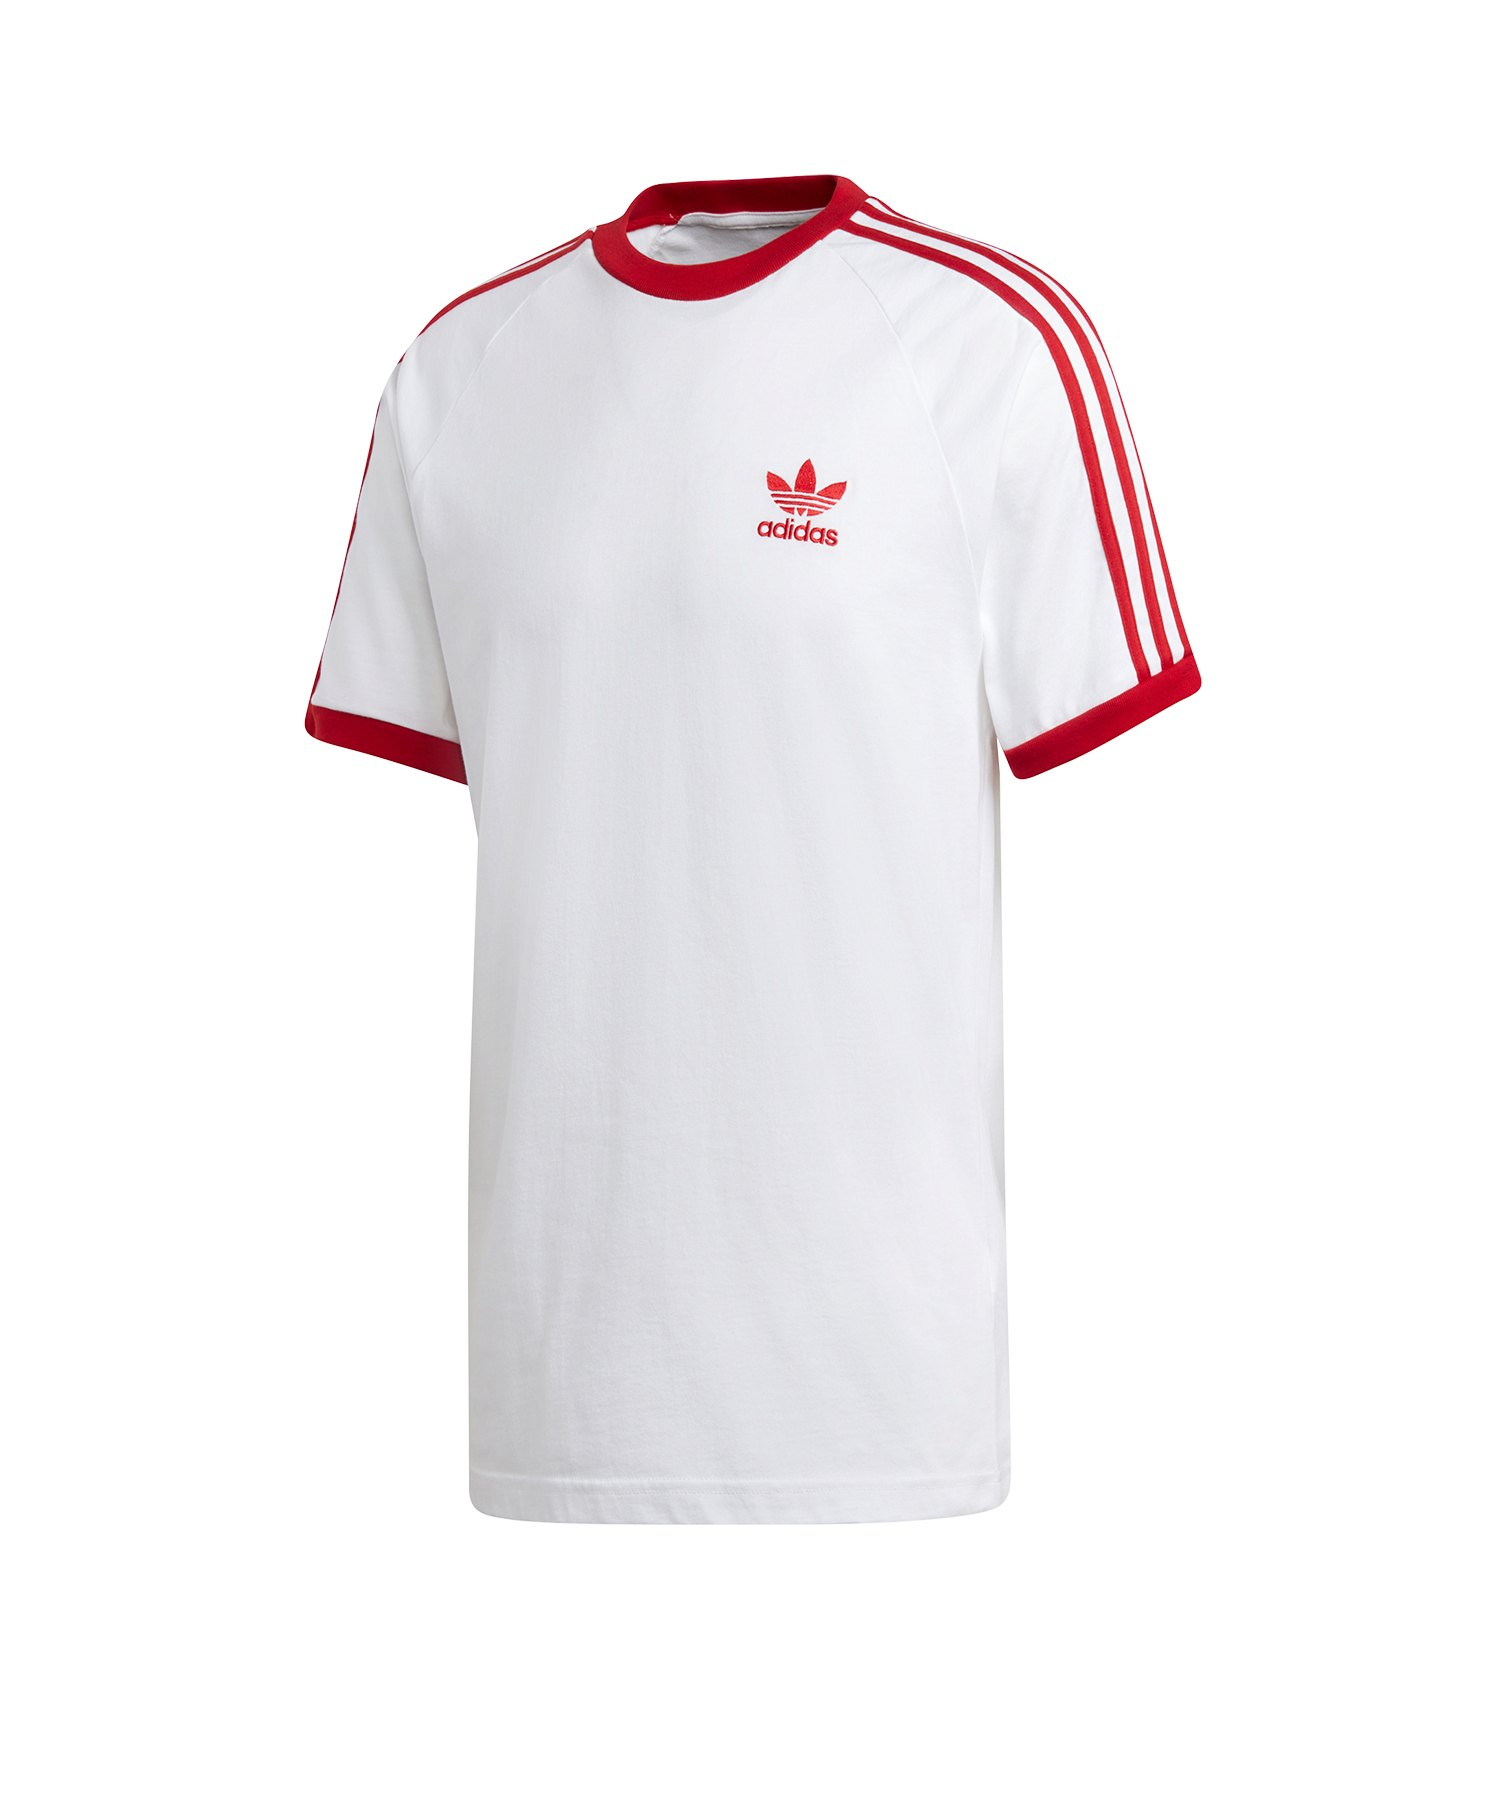 adidas originals 3 stripes t shirt weiss rot lifestyle. Black Bedroom Furniture Sets. Home Design Ideas